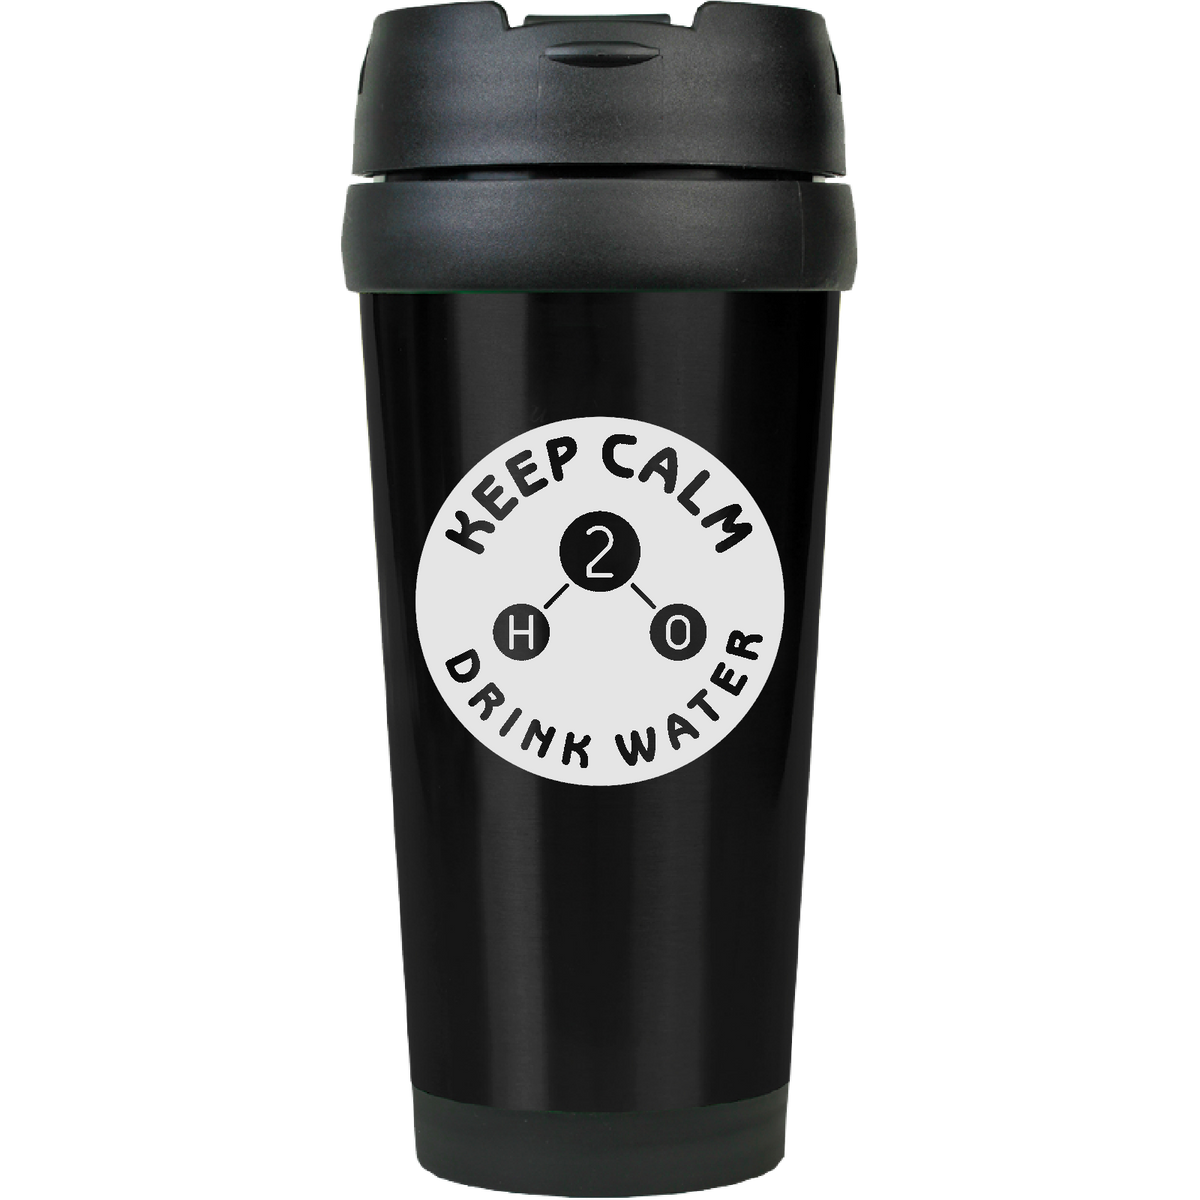 Keep Calm and Drink WATER - 16oz. Engraved Travel Mug with Flip Lid